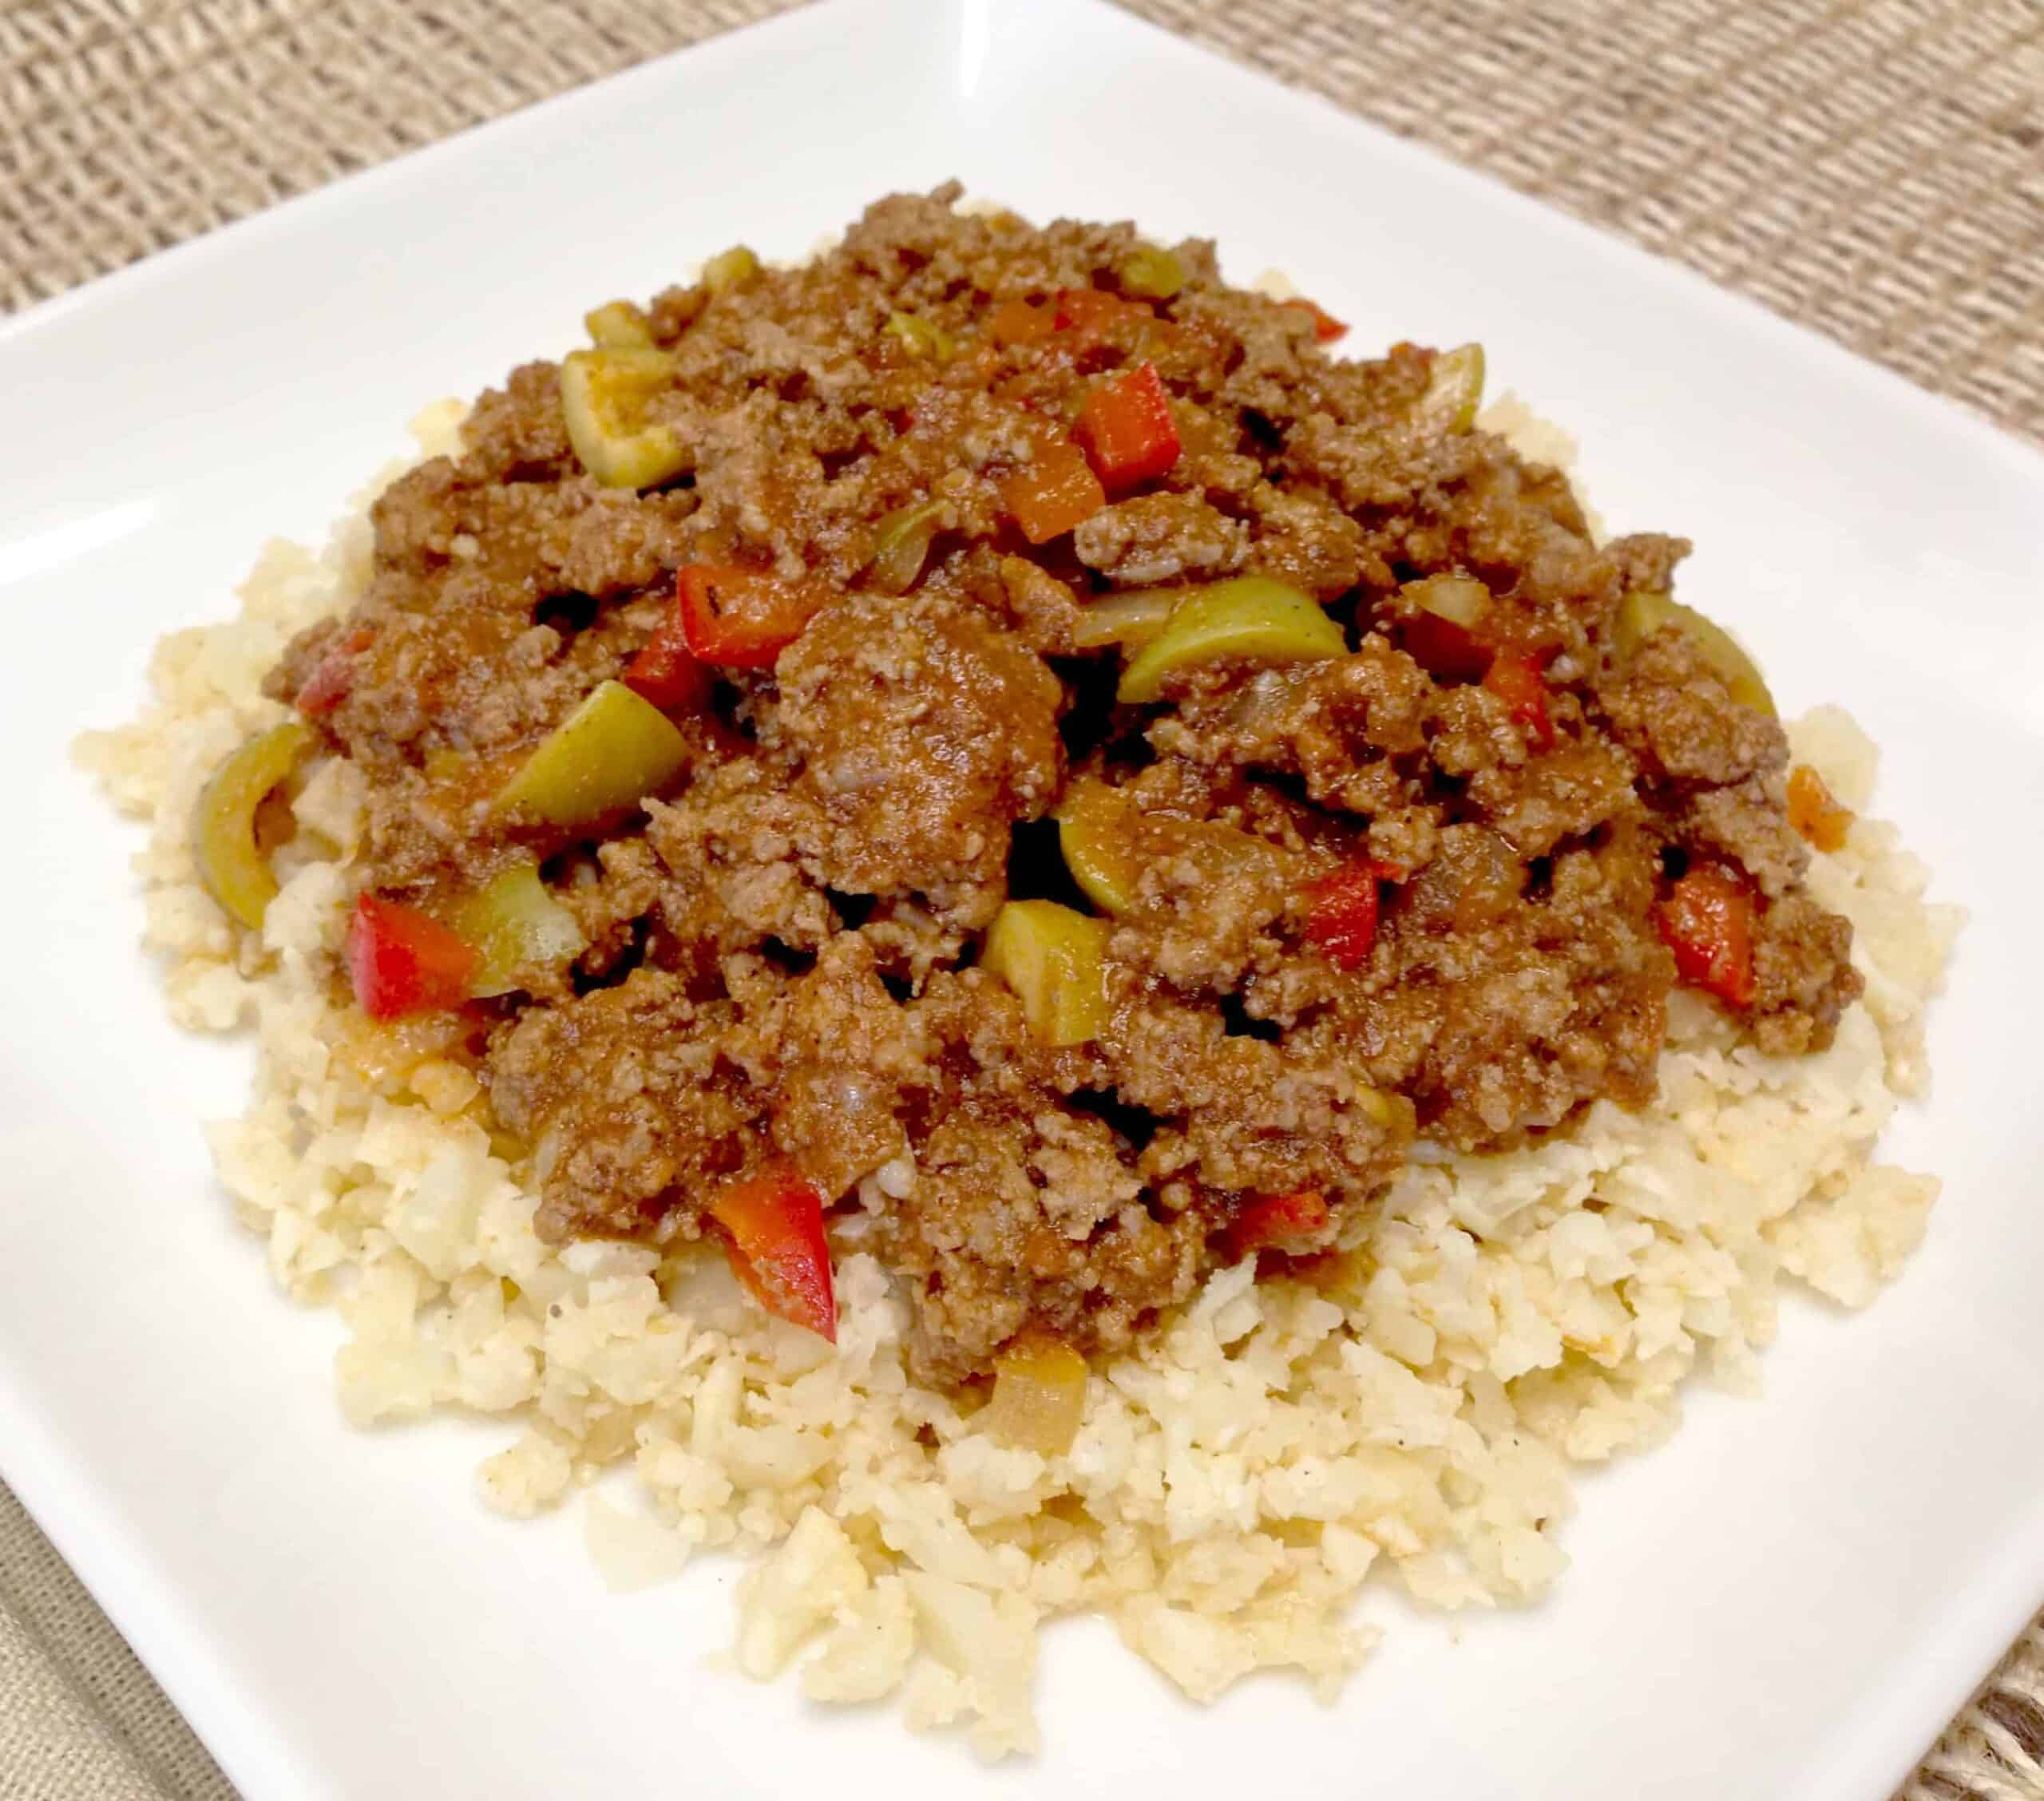 Keto Ground Beef with vegetables over cauliflower rice